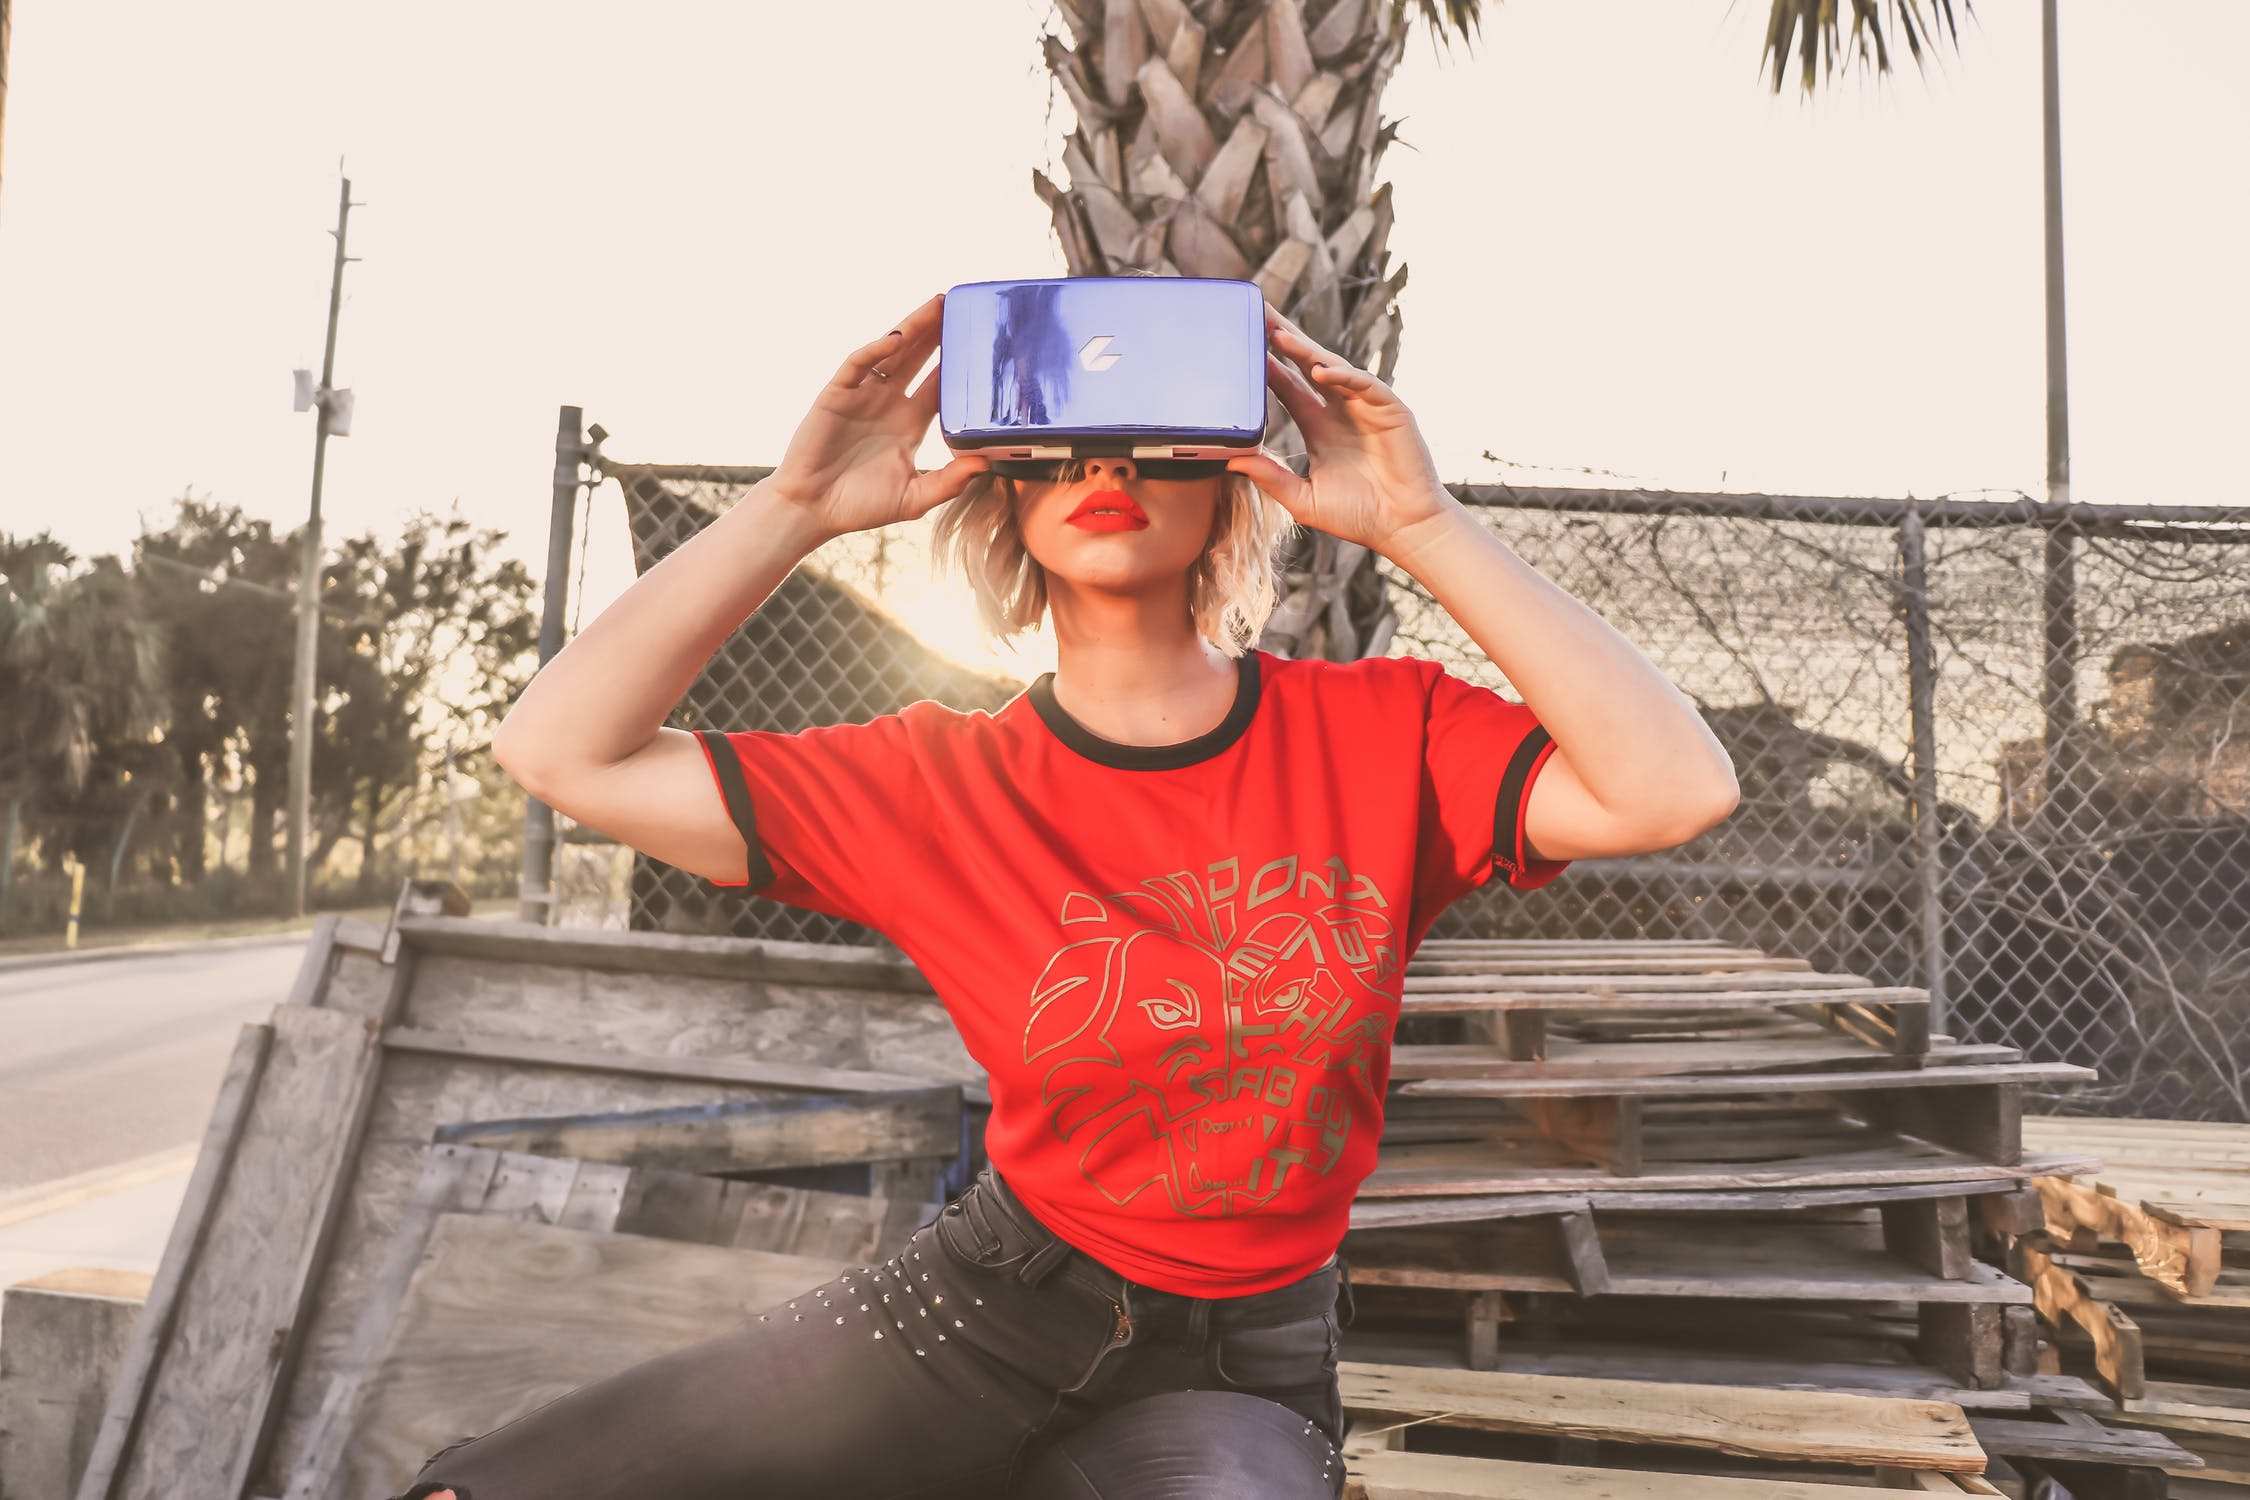 https://www.dotmug.net/wp-content/uploads/2018/05/virtual-reality-apple.jpg